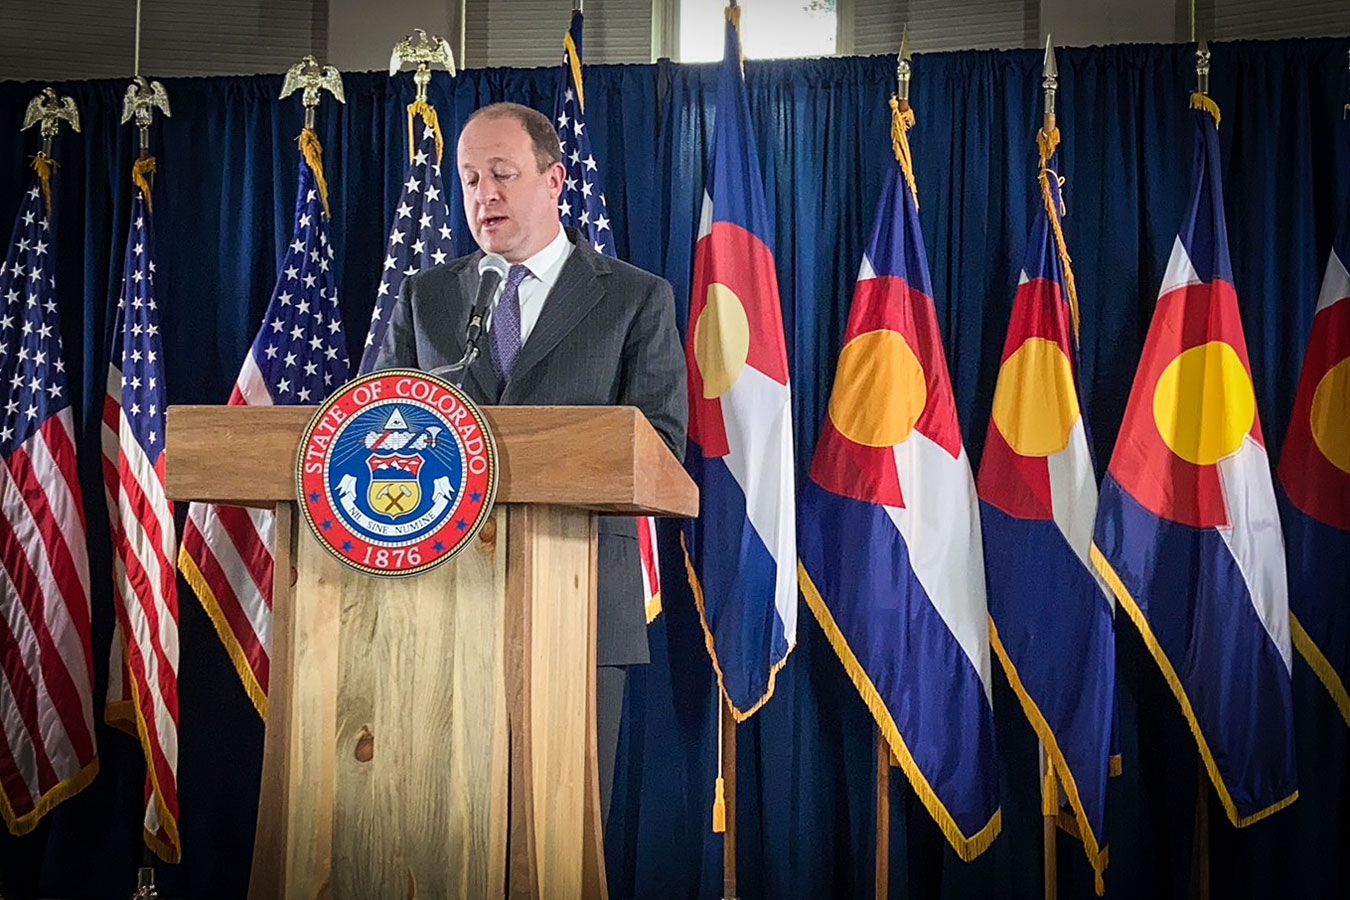 Gov. Jared Polis speaks at the carriage house of the governor's residence at Boettcher Mansion, June 4, 2020.